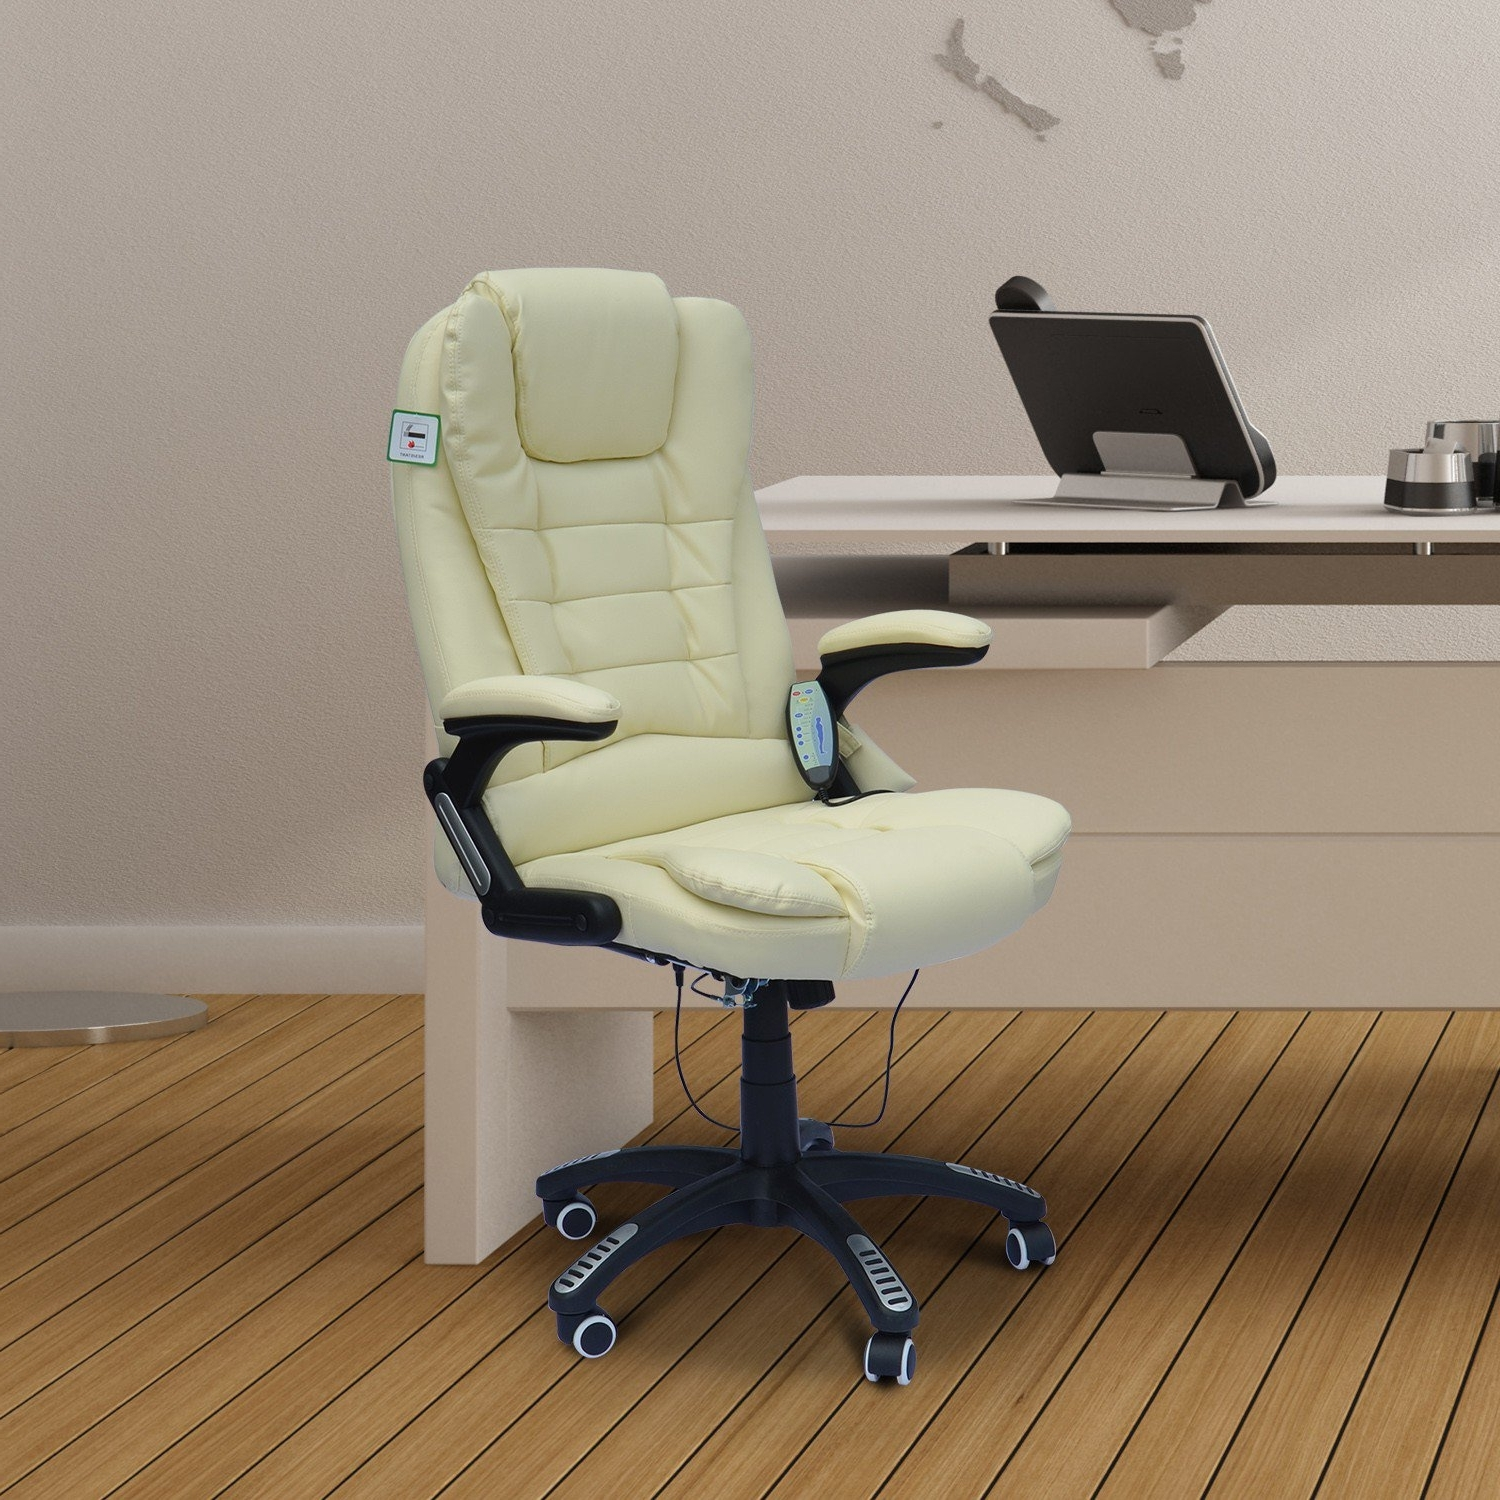 Executive Office Chairs With Massage/heat Pertaining To Widely Used Homcom Massage Chair Office Computer Executive Ergonomic Heated (View 19 of 20)